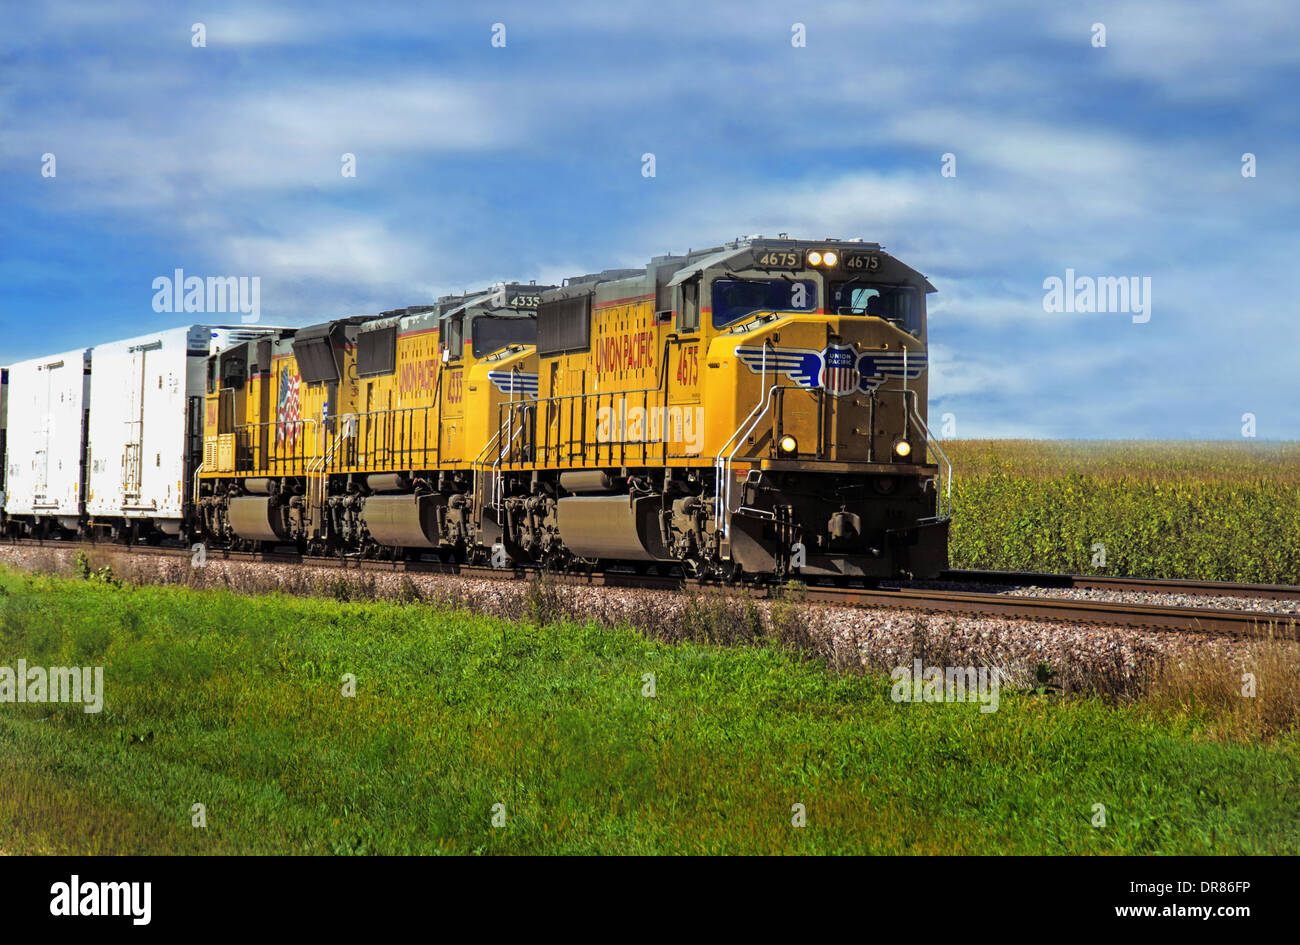 Union Pacific train on tracks near to the Lincoln Highway   near to Ashton, Illinois - Stock Image